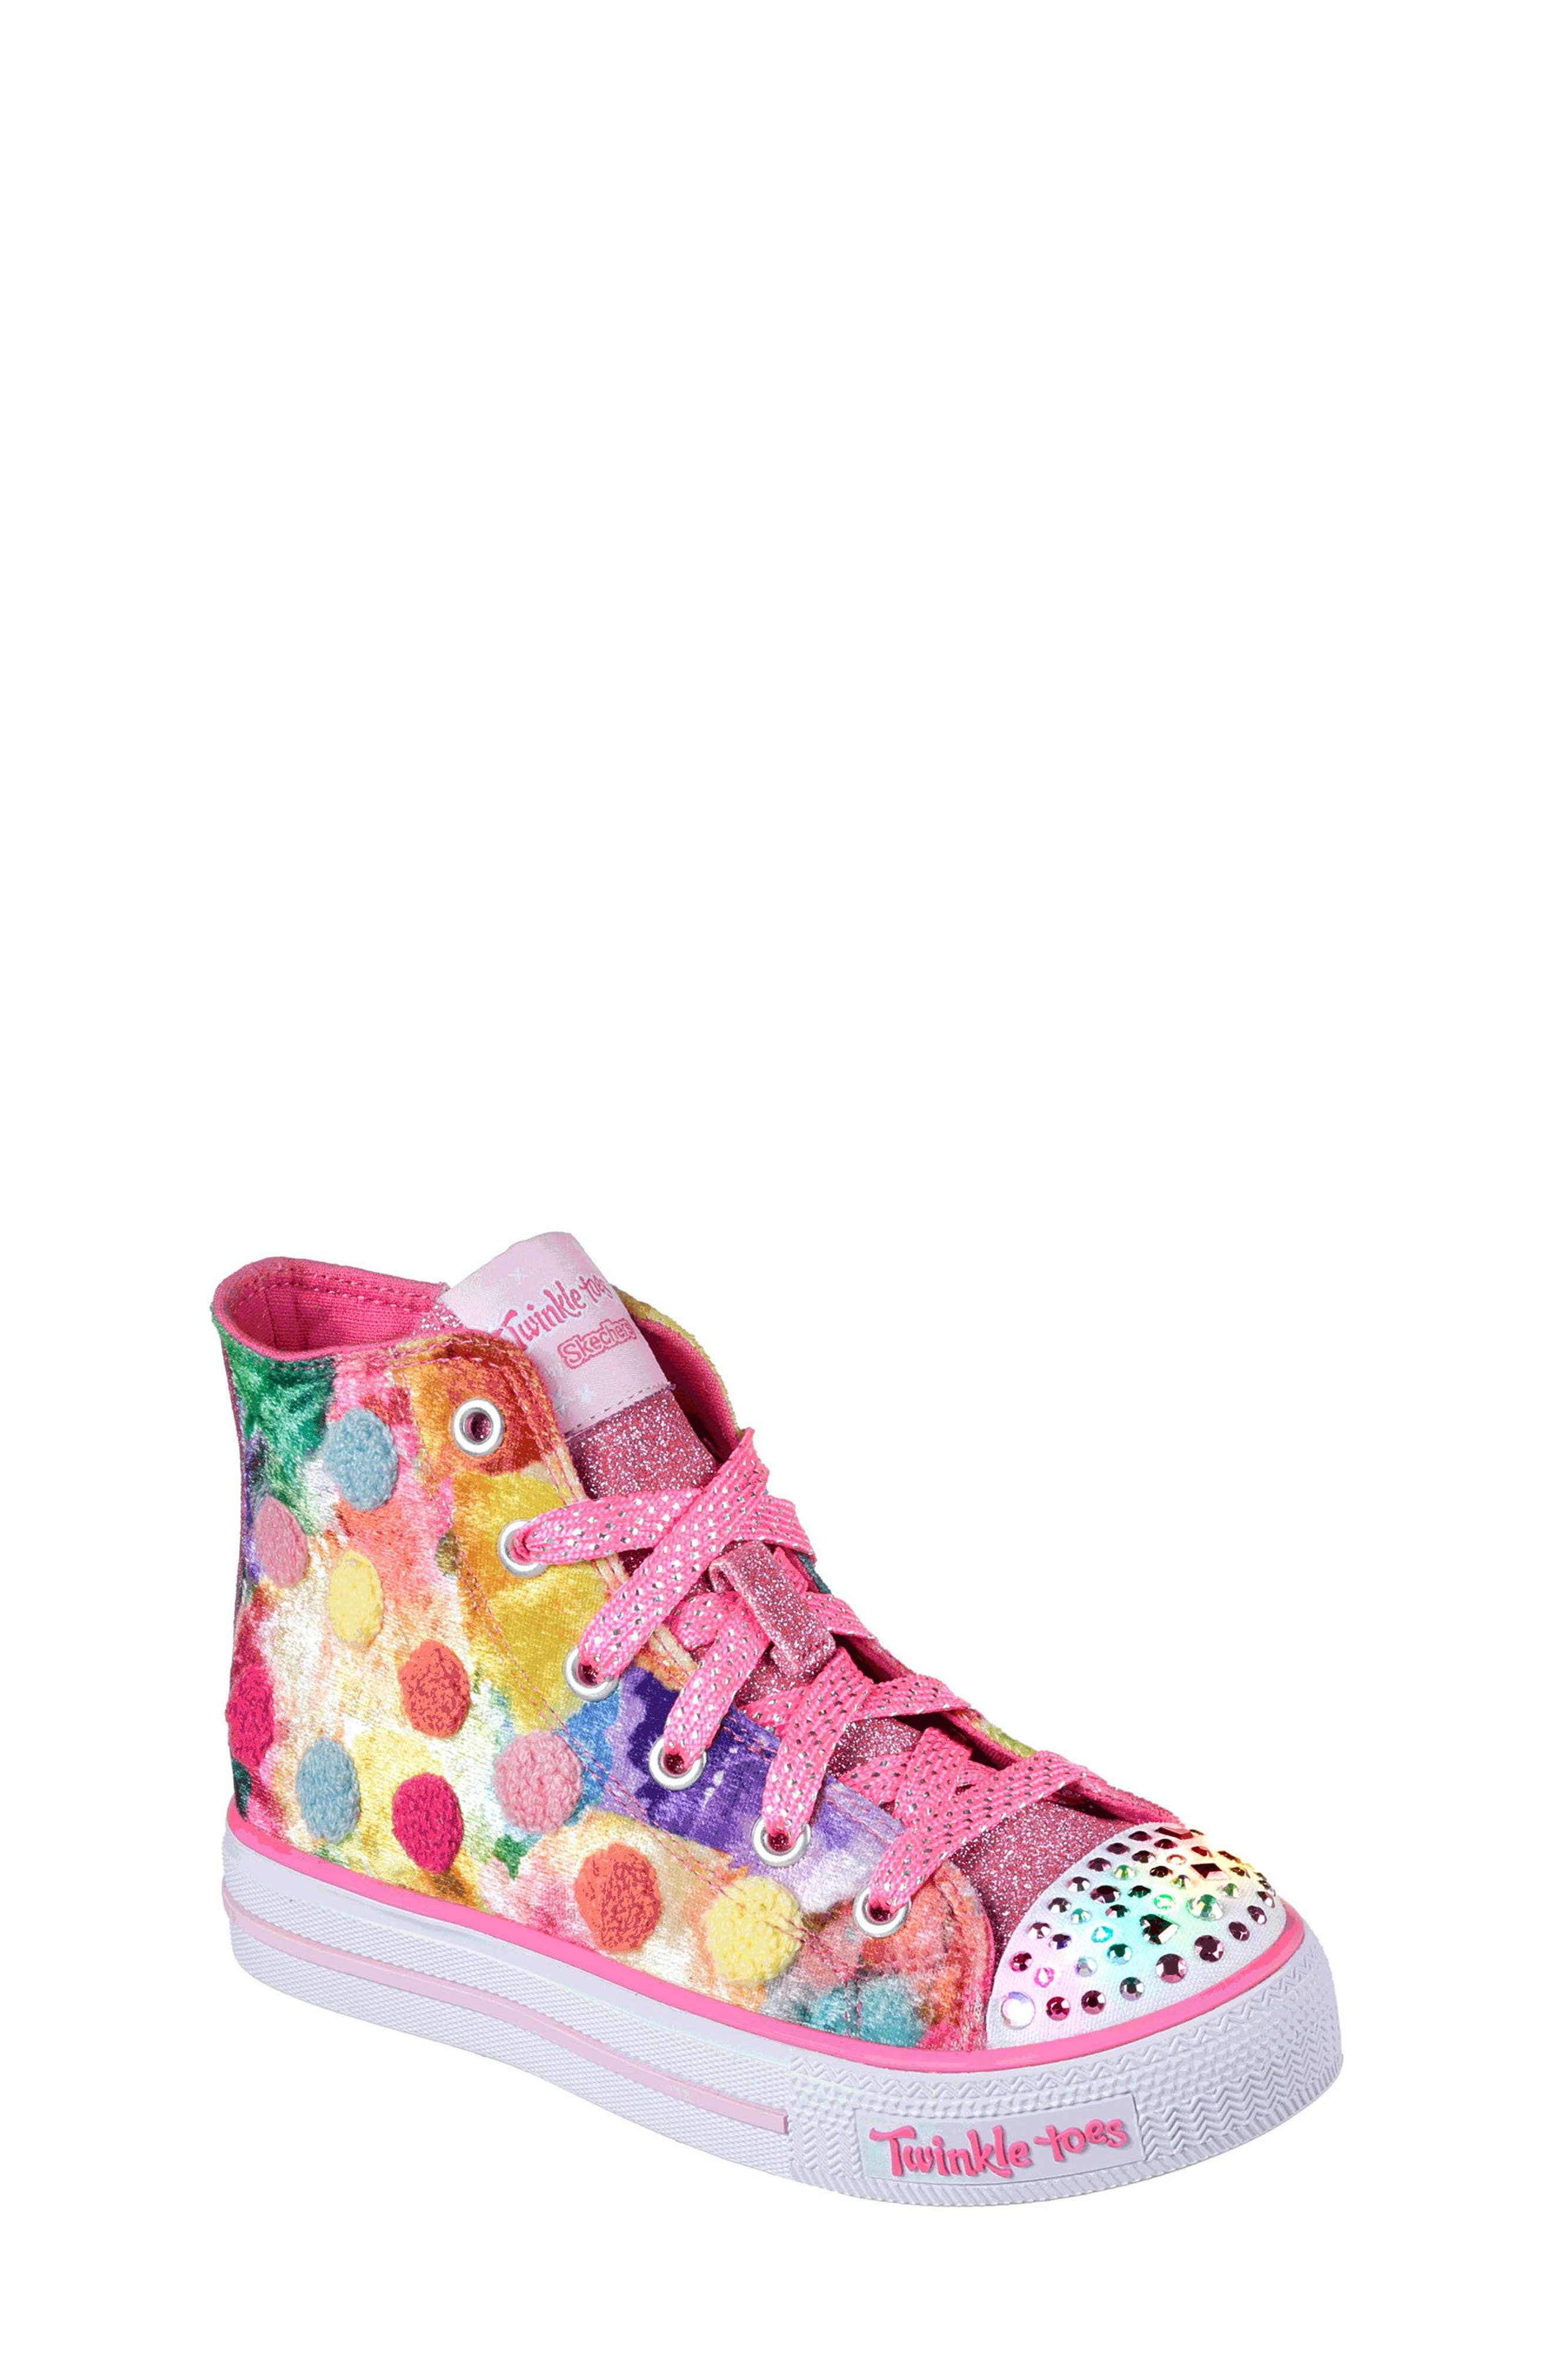 SKECHERS Twinkle Toes Shuffles Light-Up High Top Sneaker, Main, color, 650